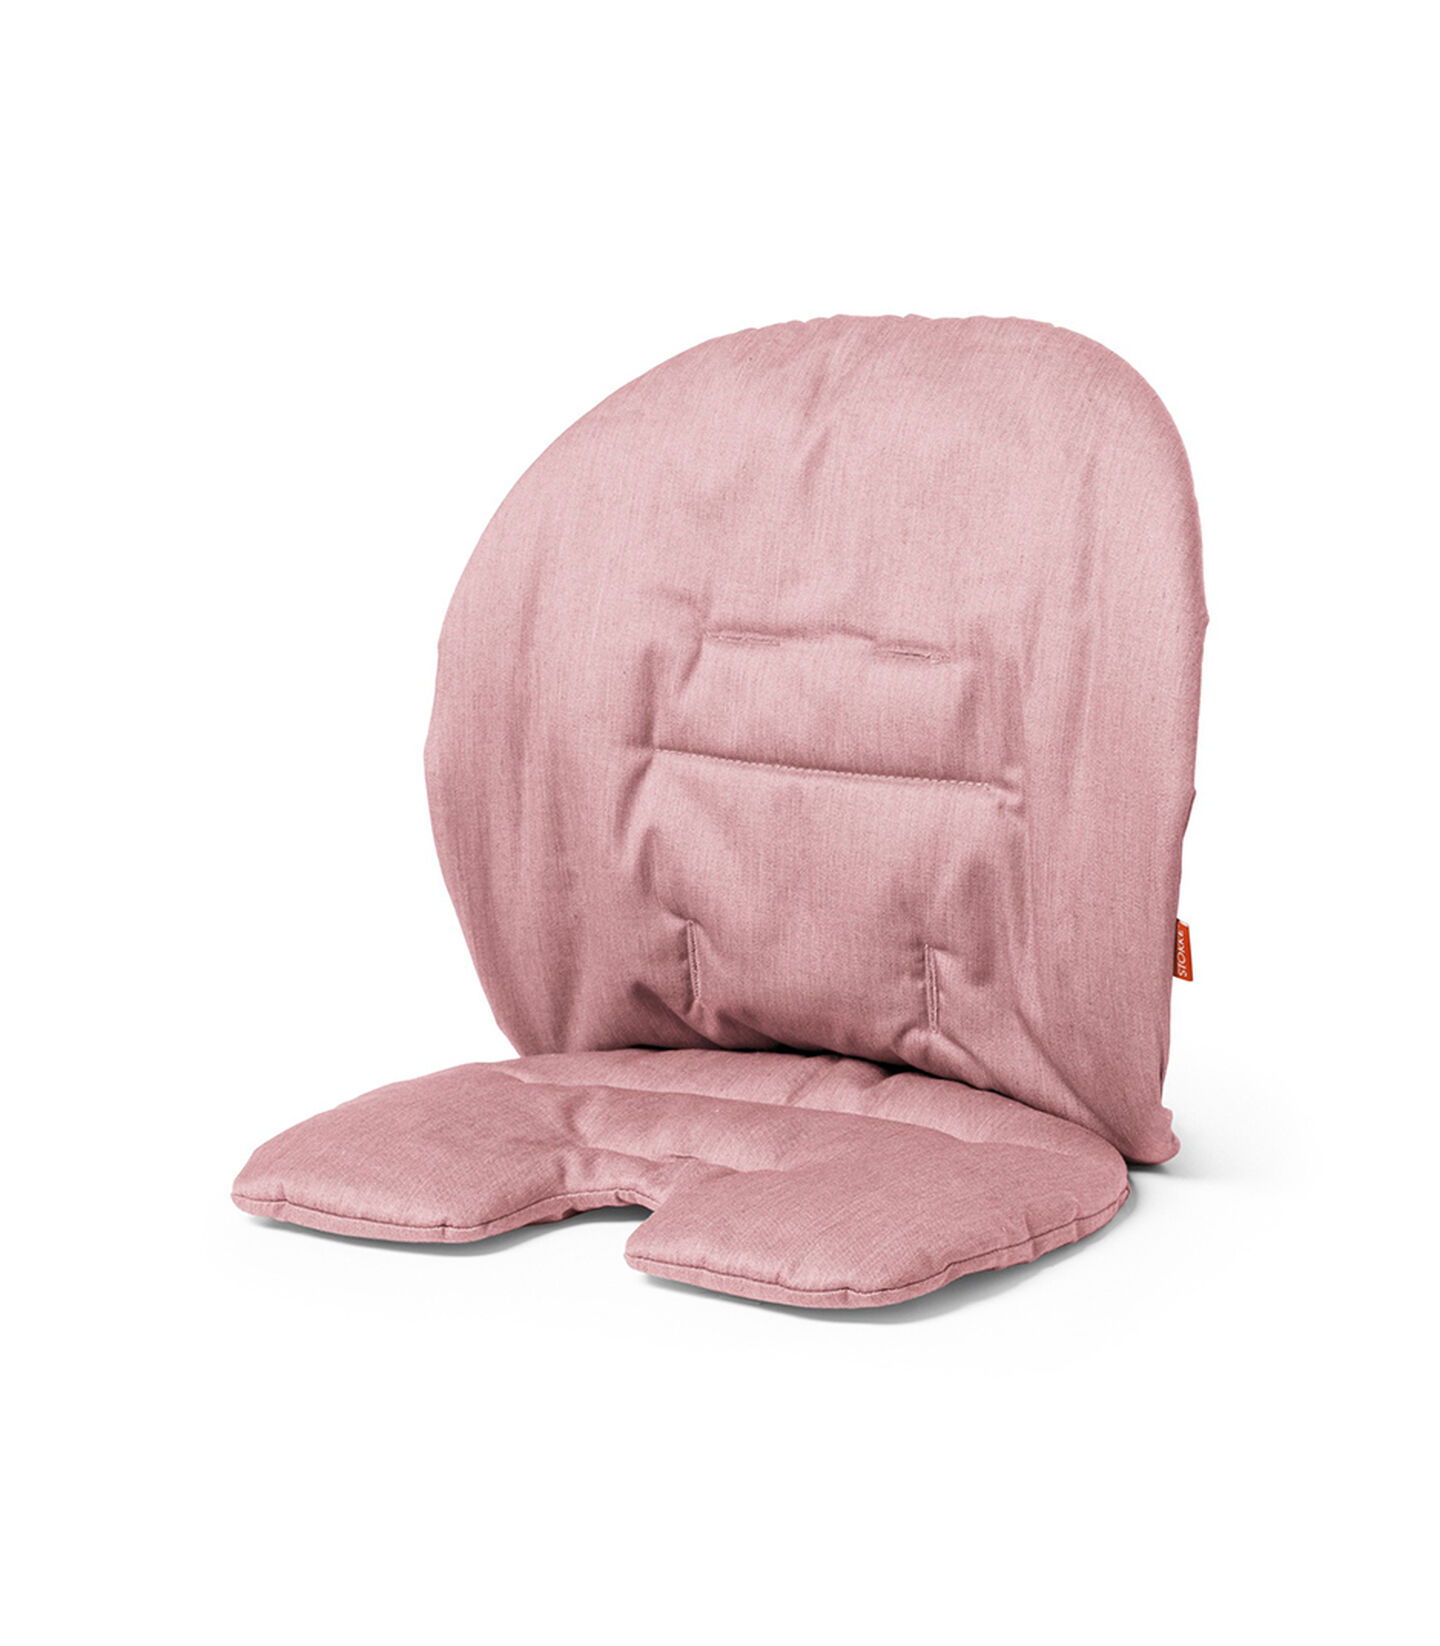 @Home; Accessories; Cushion; Pink; Photo; Plain; Stokke Steps